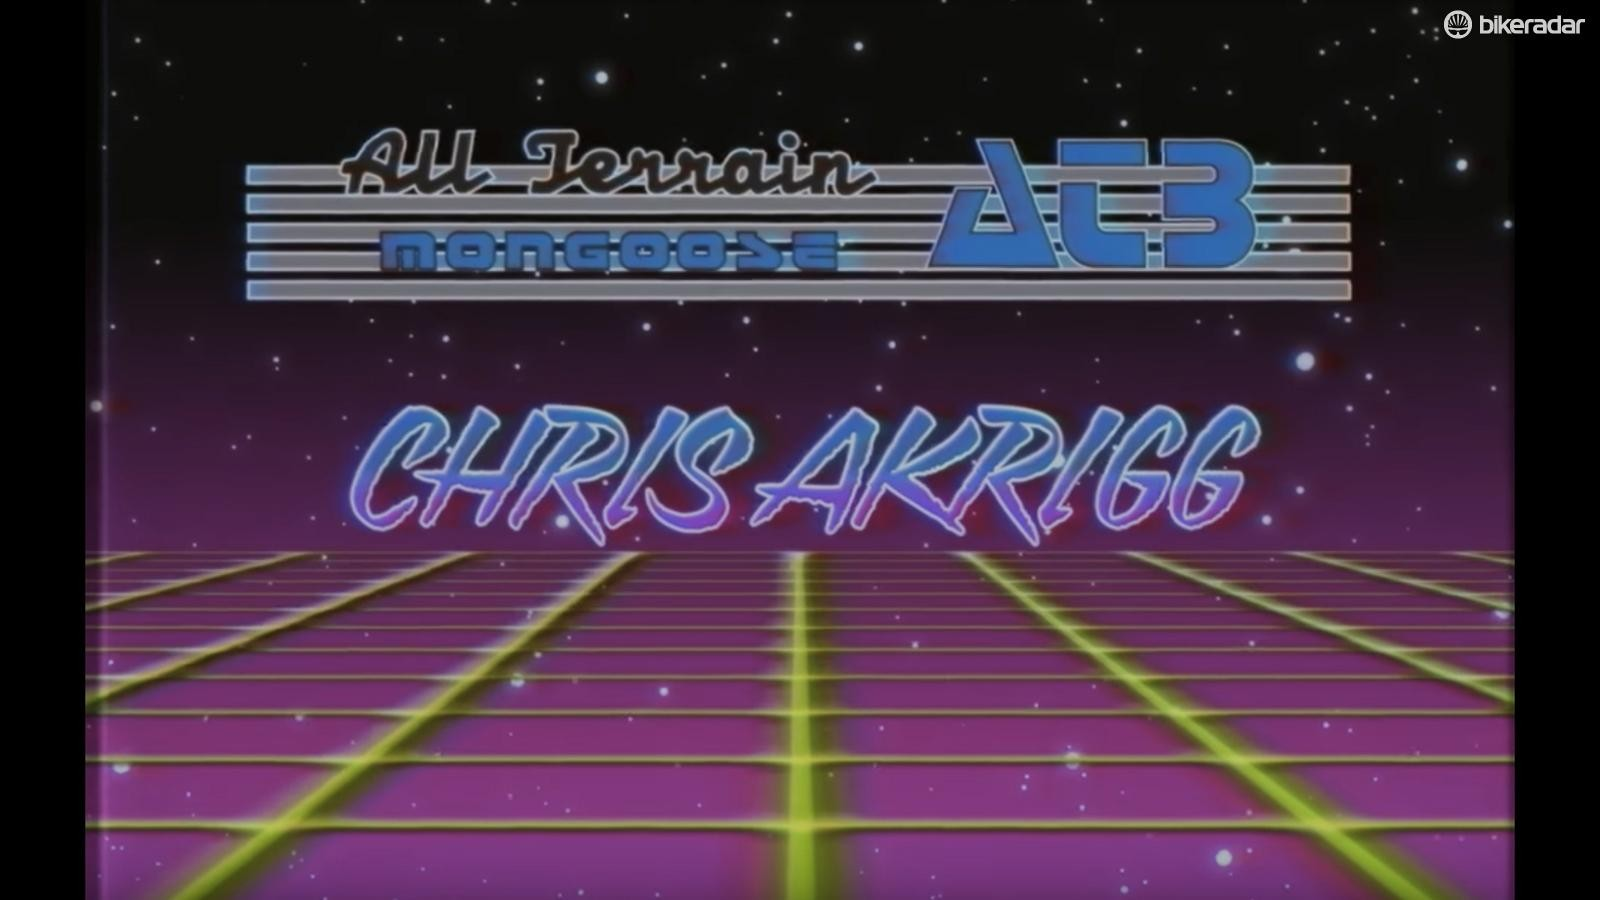 Chris Akrigg takes us back to the early 1990s in all their neon glory